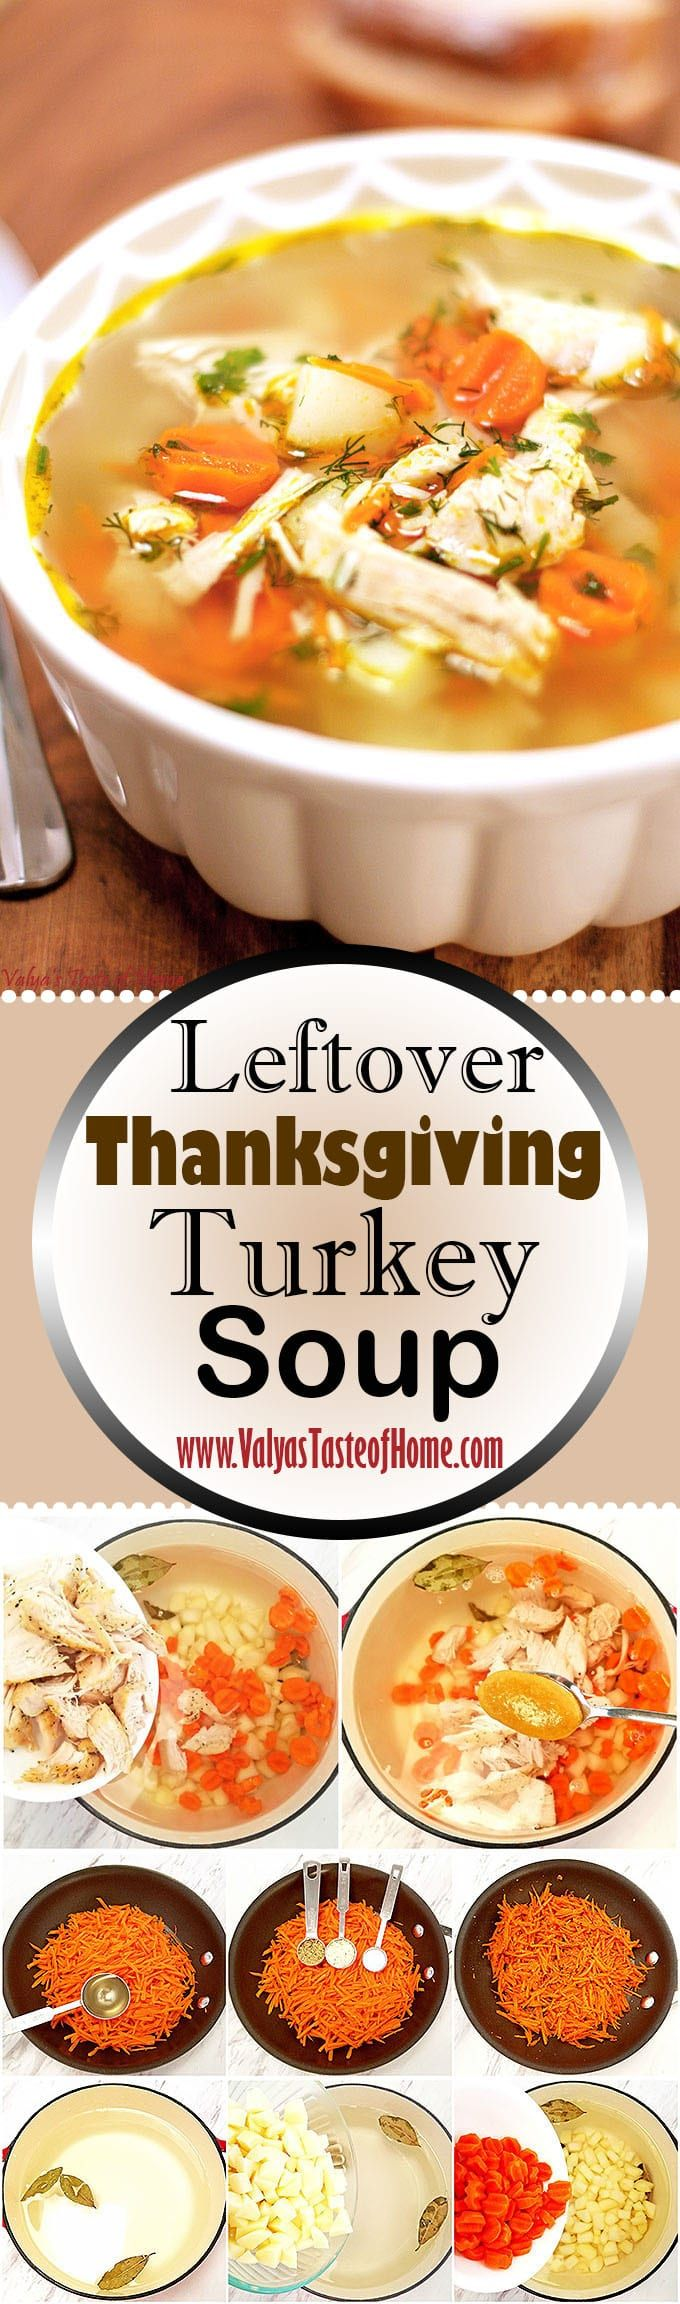 The richly flavored turkey makes this soup one of a kind. It tastes so flavorful, light and satisfying. It also keeps you warm and cozy on a cool fall day. This soup recipe is so easy to make and offers cravable flavors of turkey, vegetables, and rice. When else in the year can you enjoy Leftover Turkey Soup? We LOVE it!   www.valyastasteofhome.com